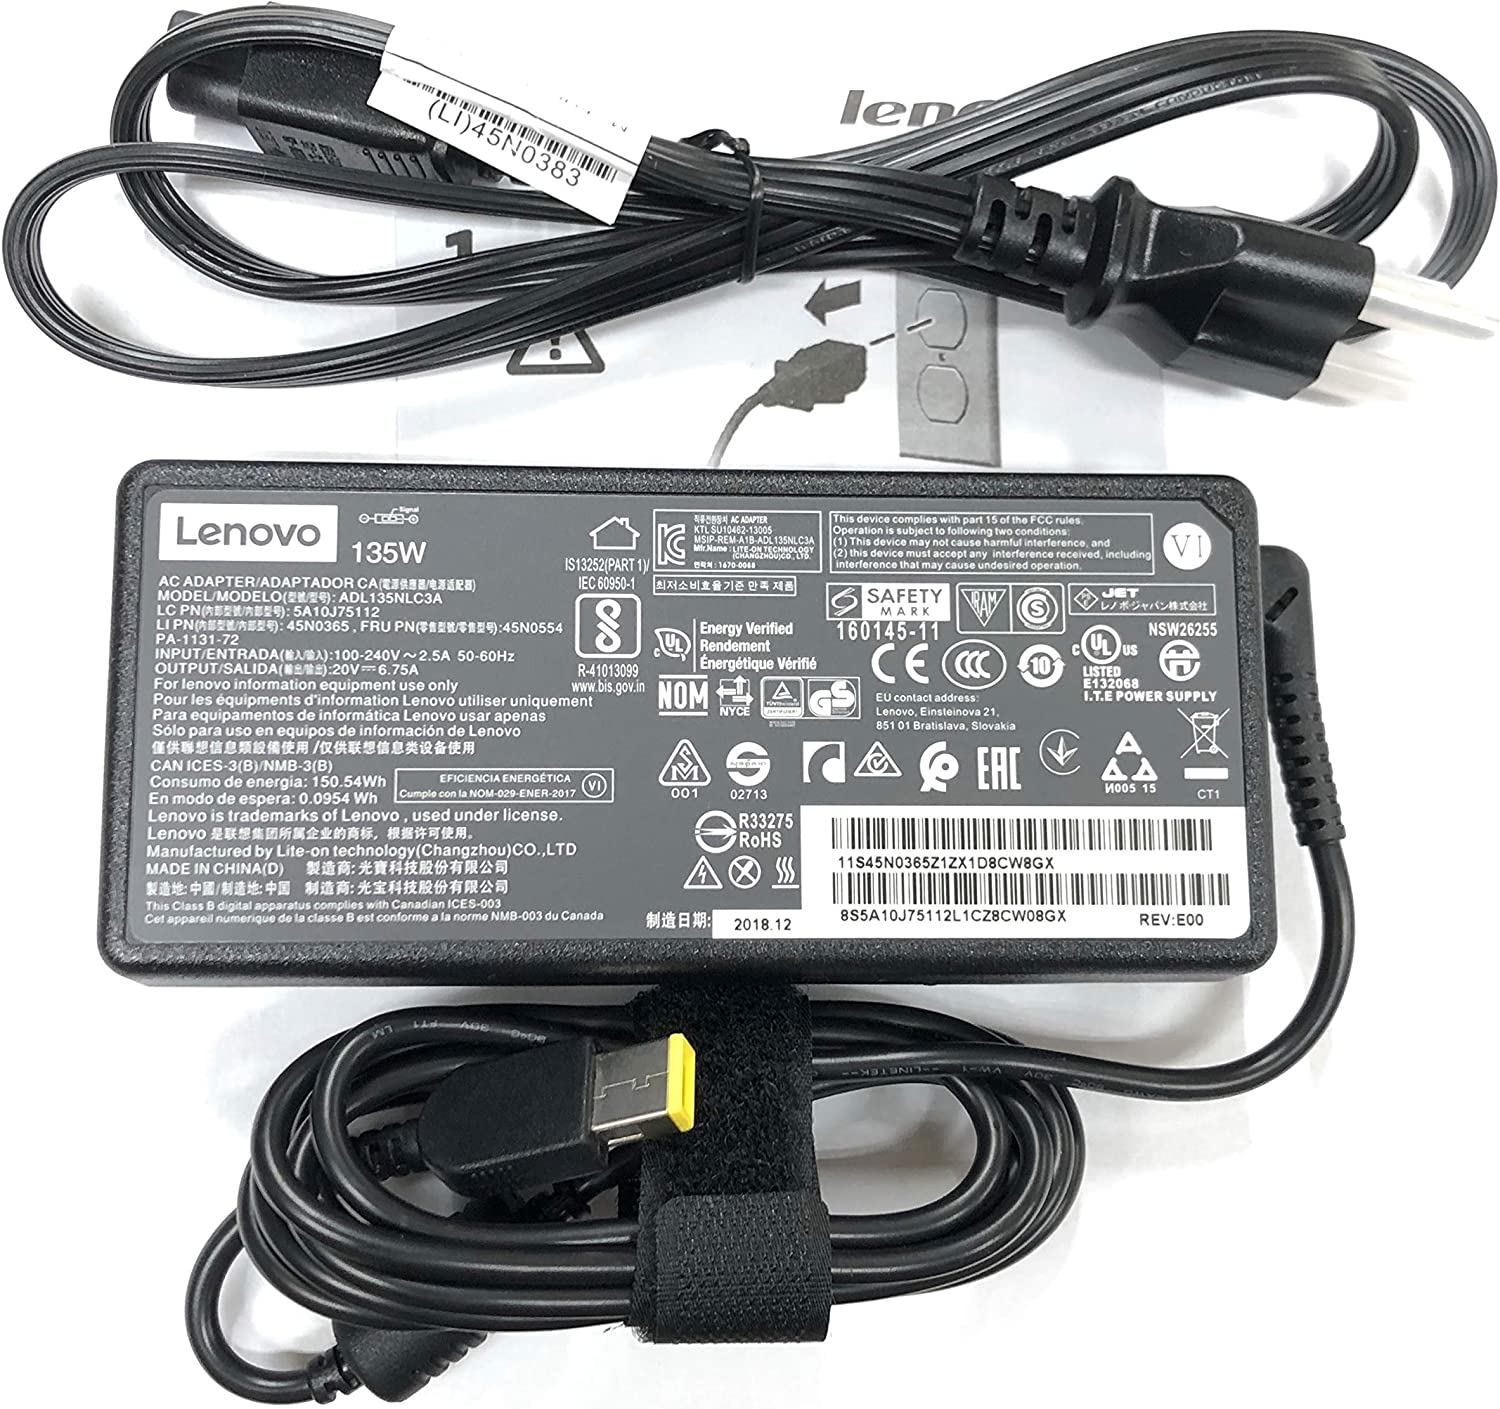 Lenovo 20V 6.7A 135W Slim Tip AC Adapter for Lenovo Y50c Y50p Y700-14ISK ADL135NLC3A 45N0367 PA-1131-72 45N0368 45N0502 (Renewed)